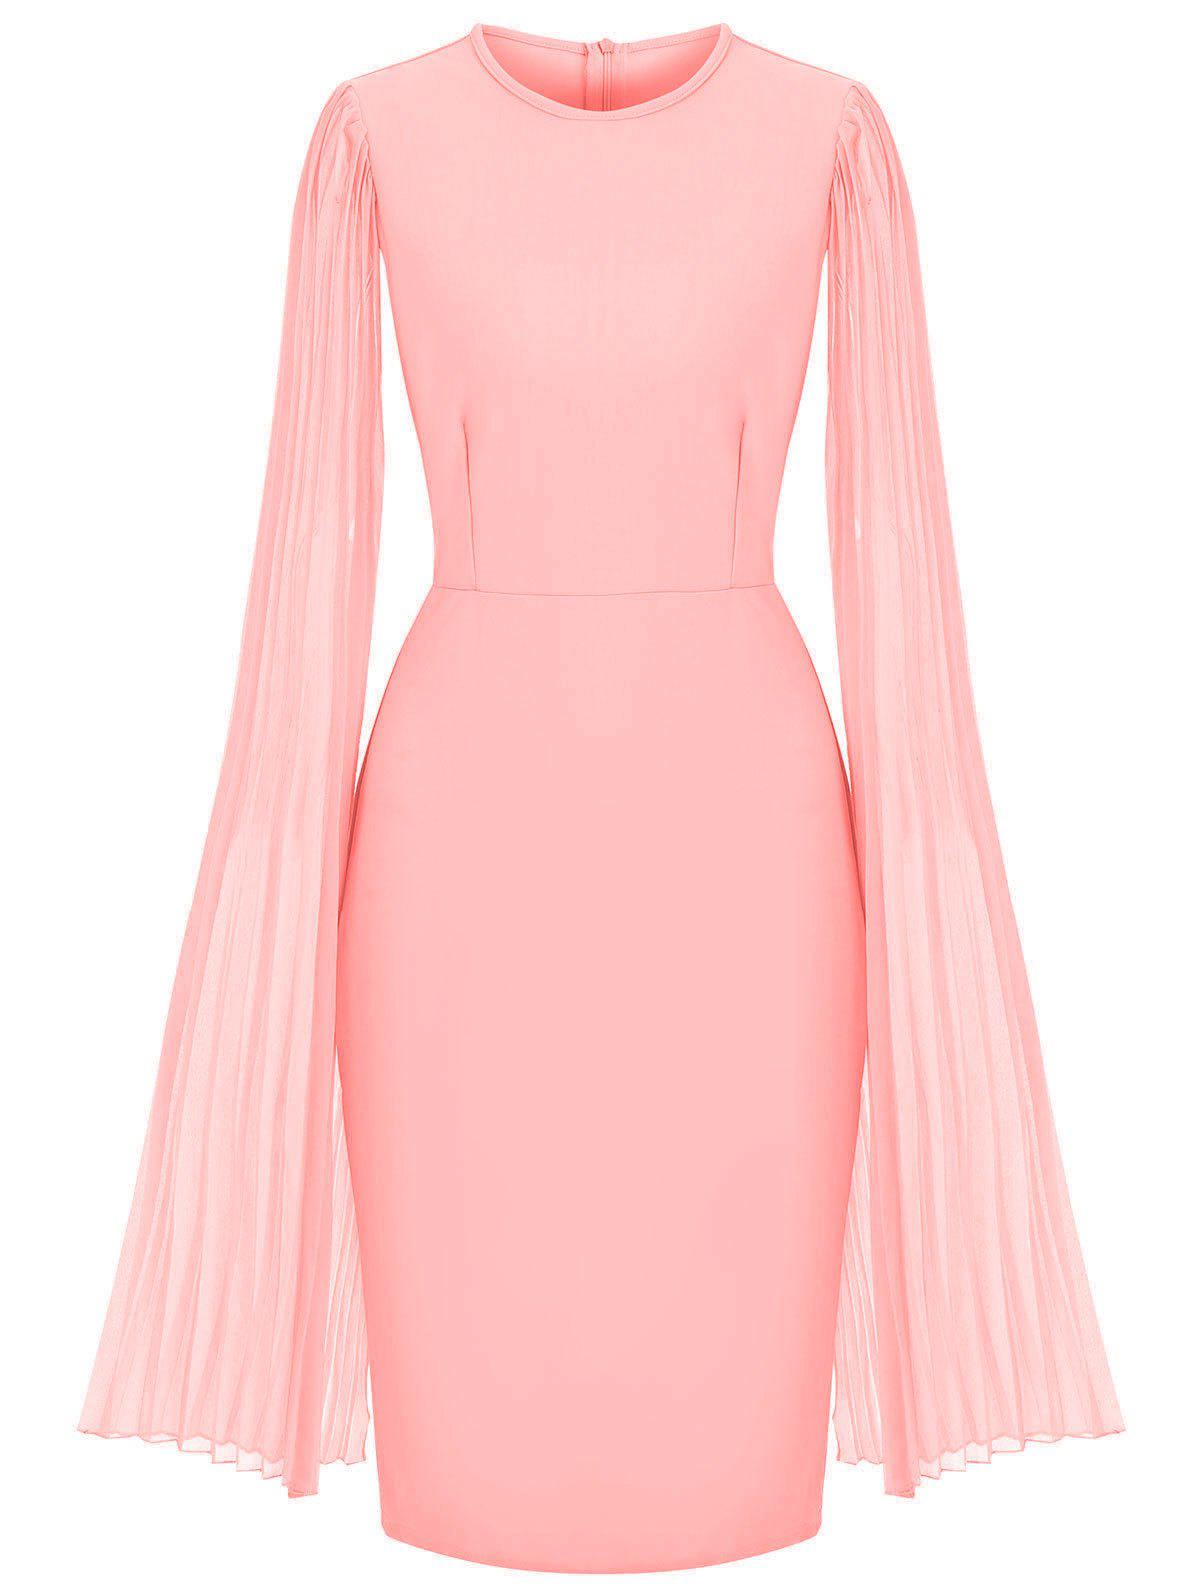 Pleated Split Sleeves Chiffon Panel Sheath Dress - PINK M